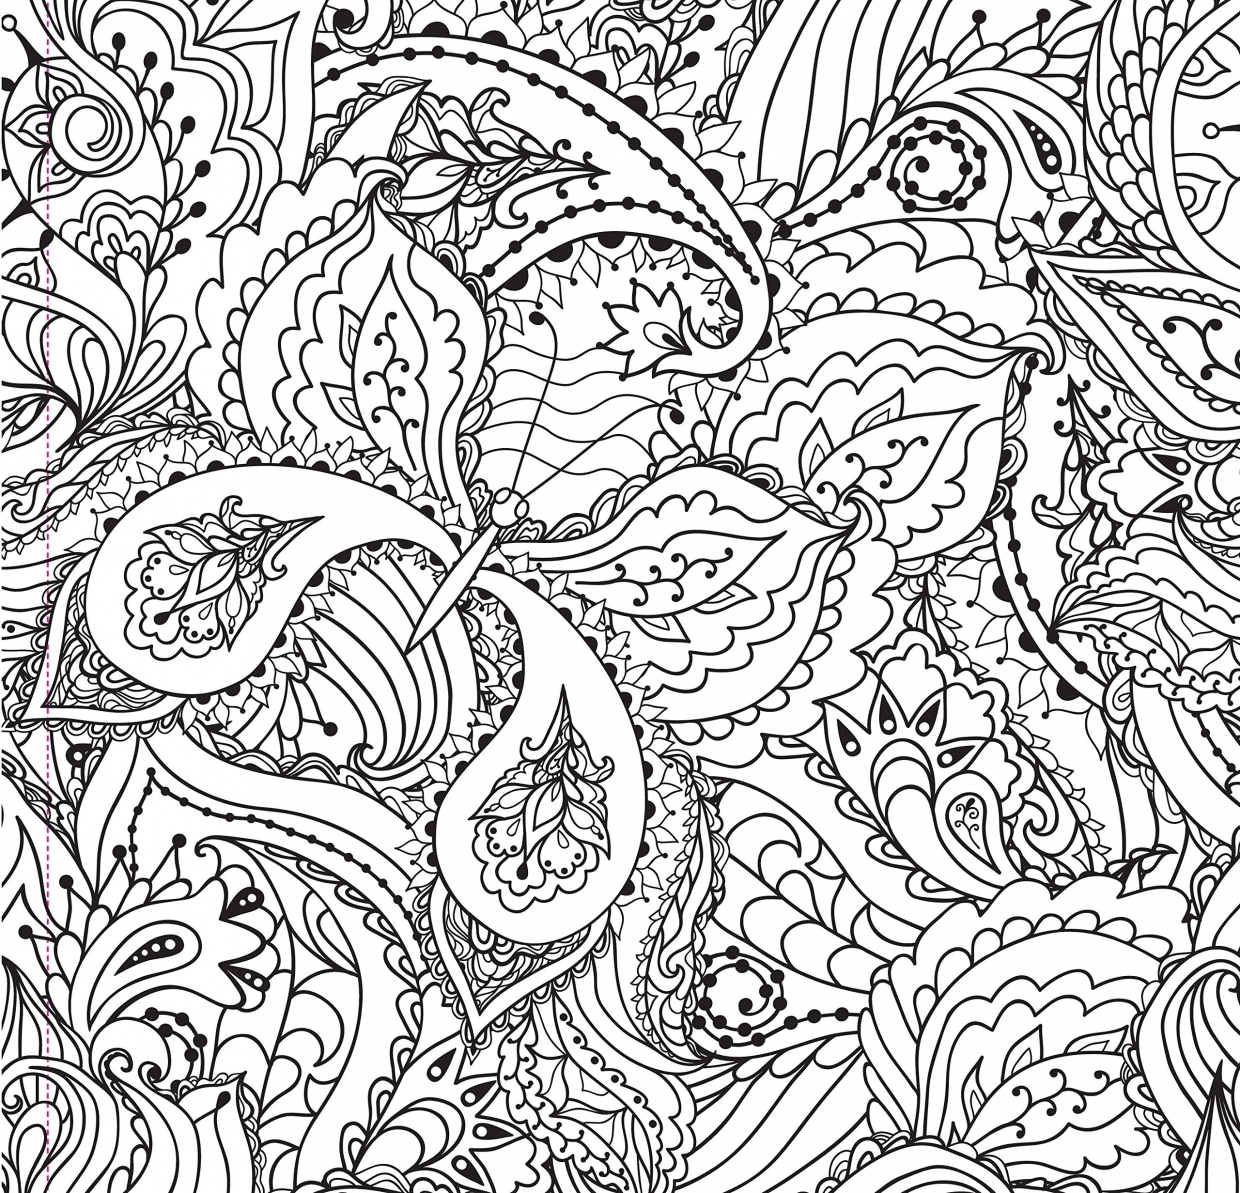 Printable Complex Coloring Pages Amusing Get This Free Complex Coloring Pages Printable Xbrt5 Decorating Design